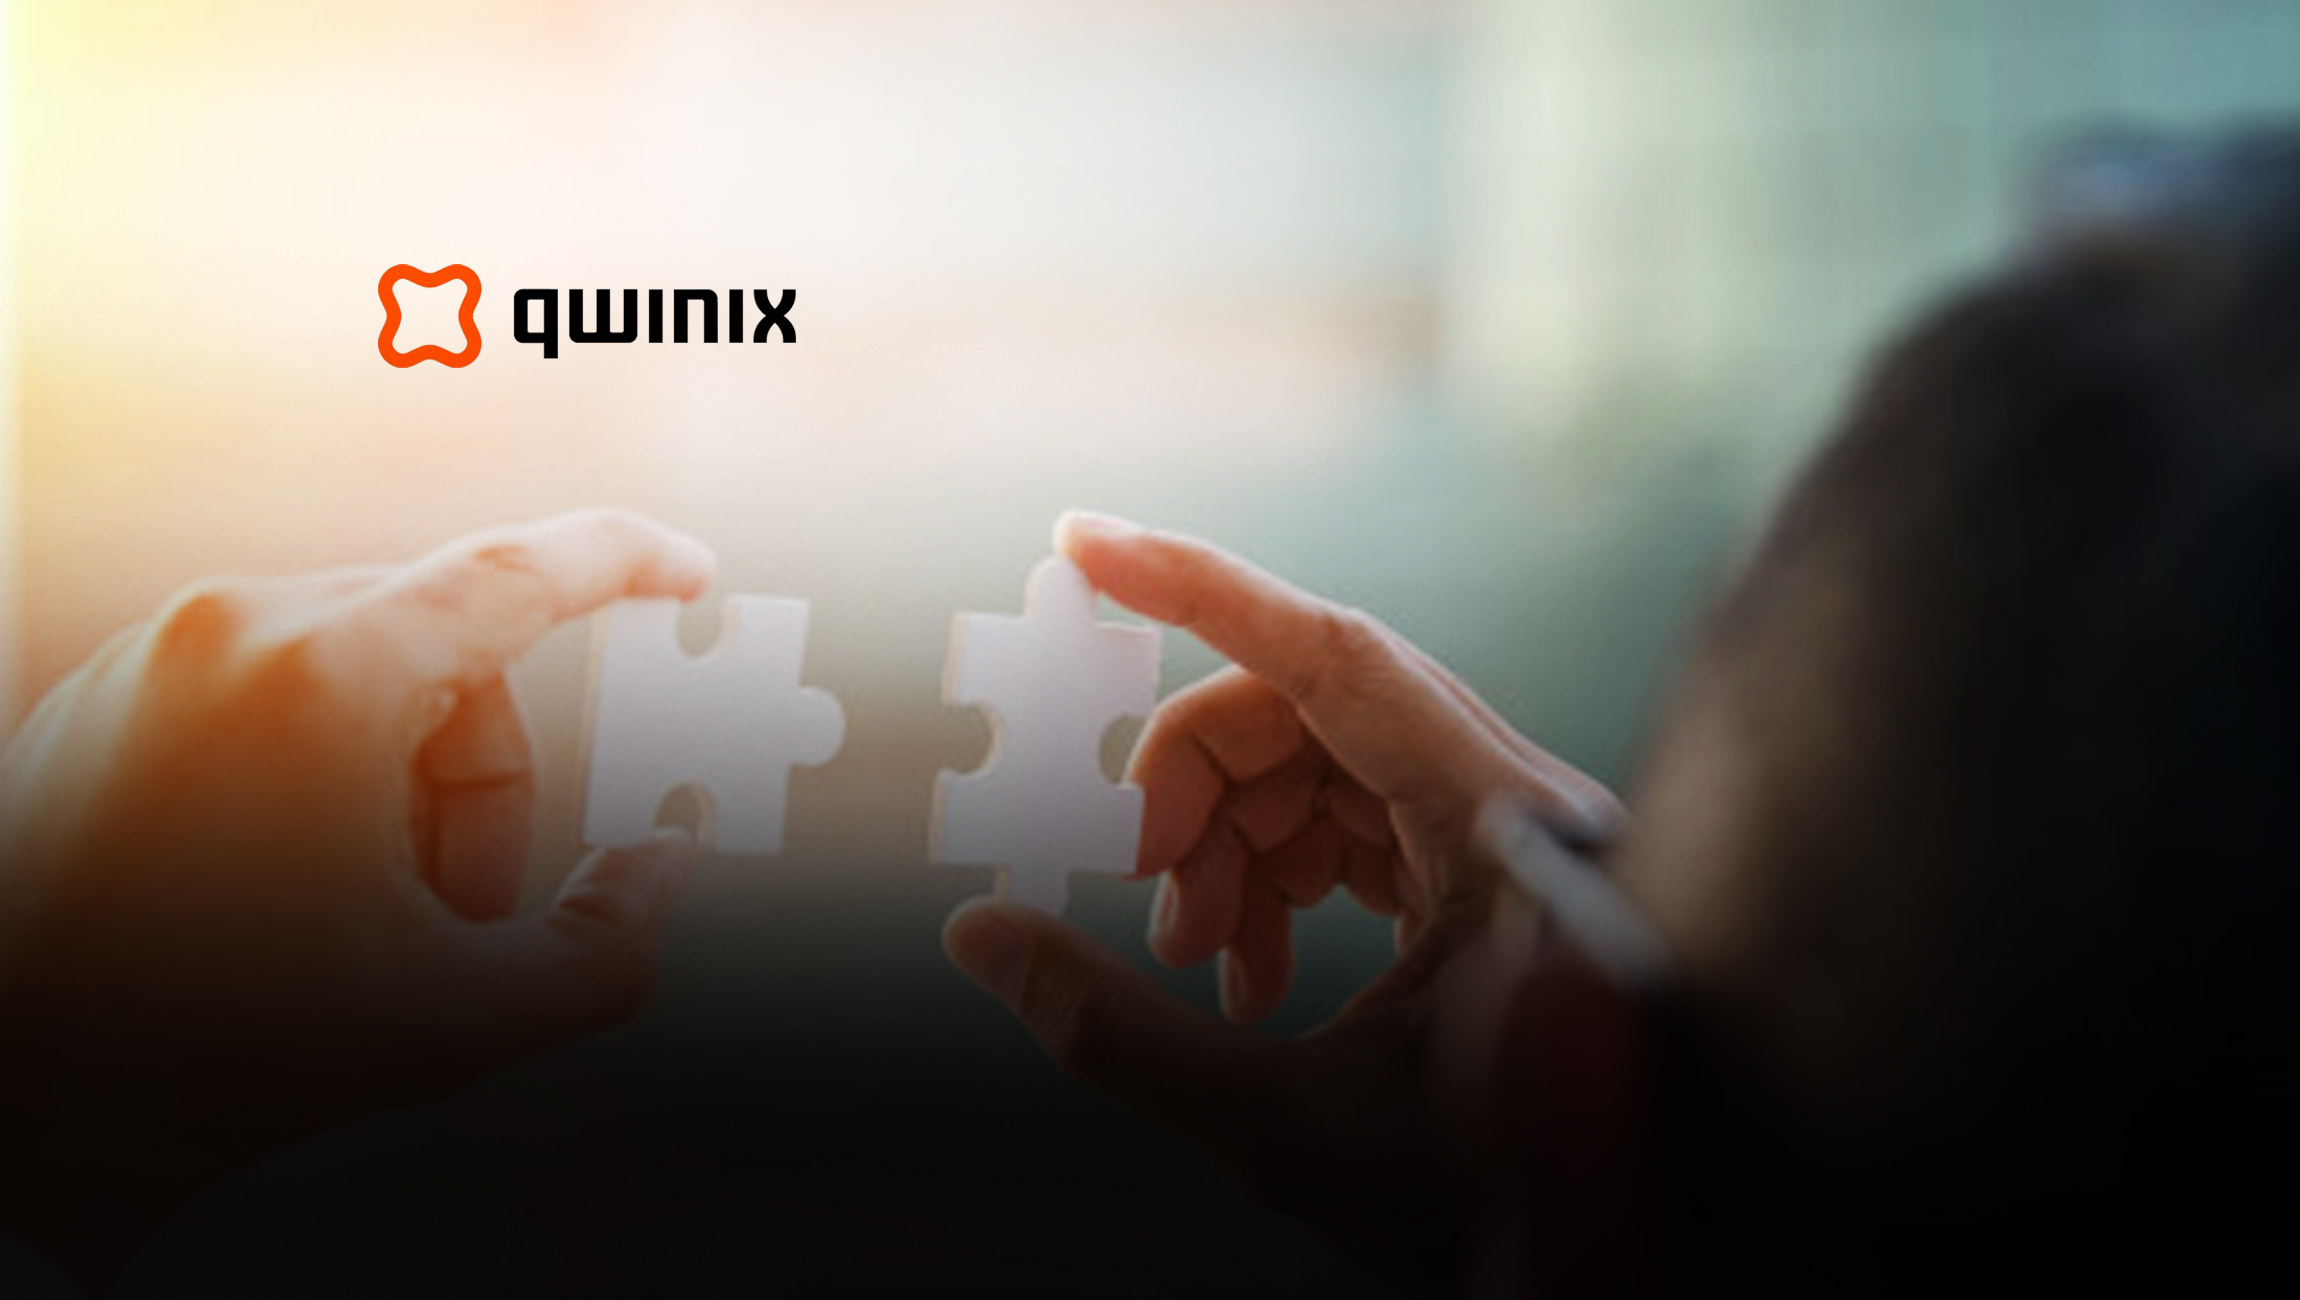 Qwinix Collaborates With Looker to Empower Digital Transformation